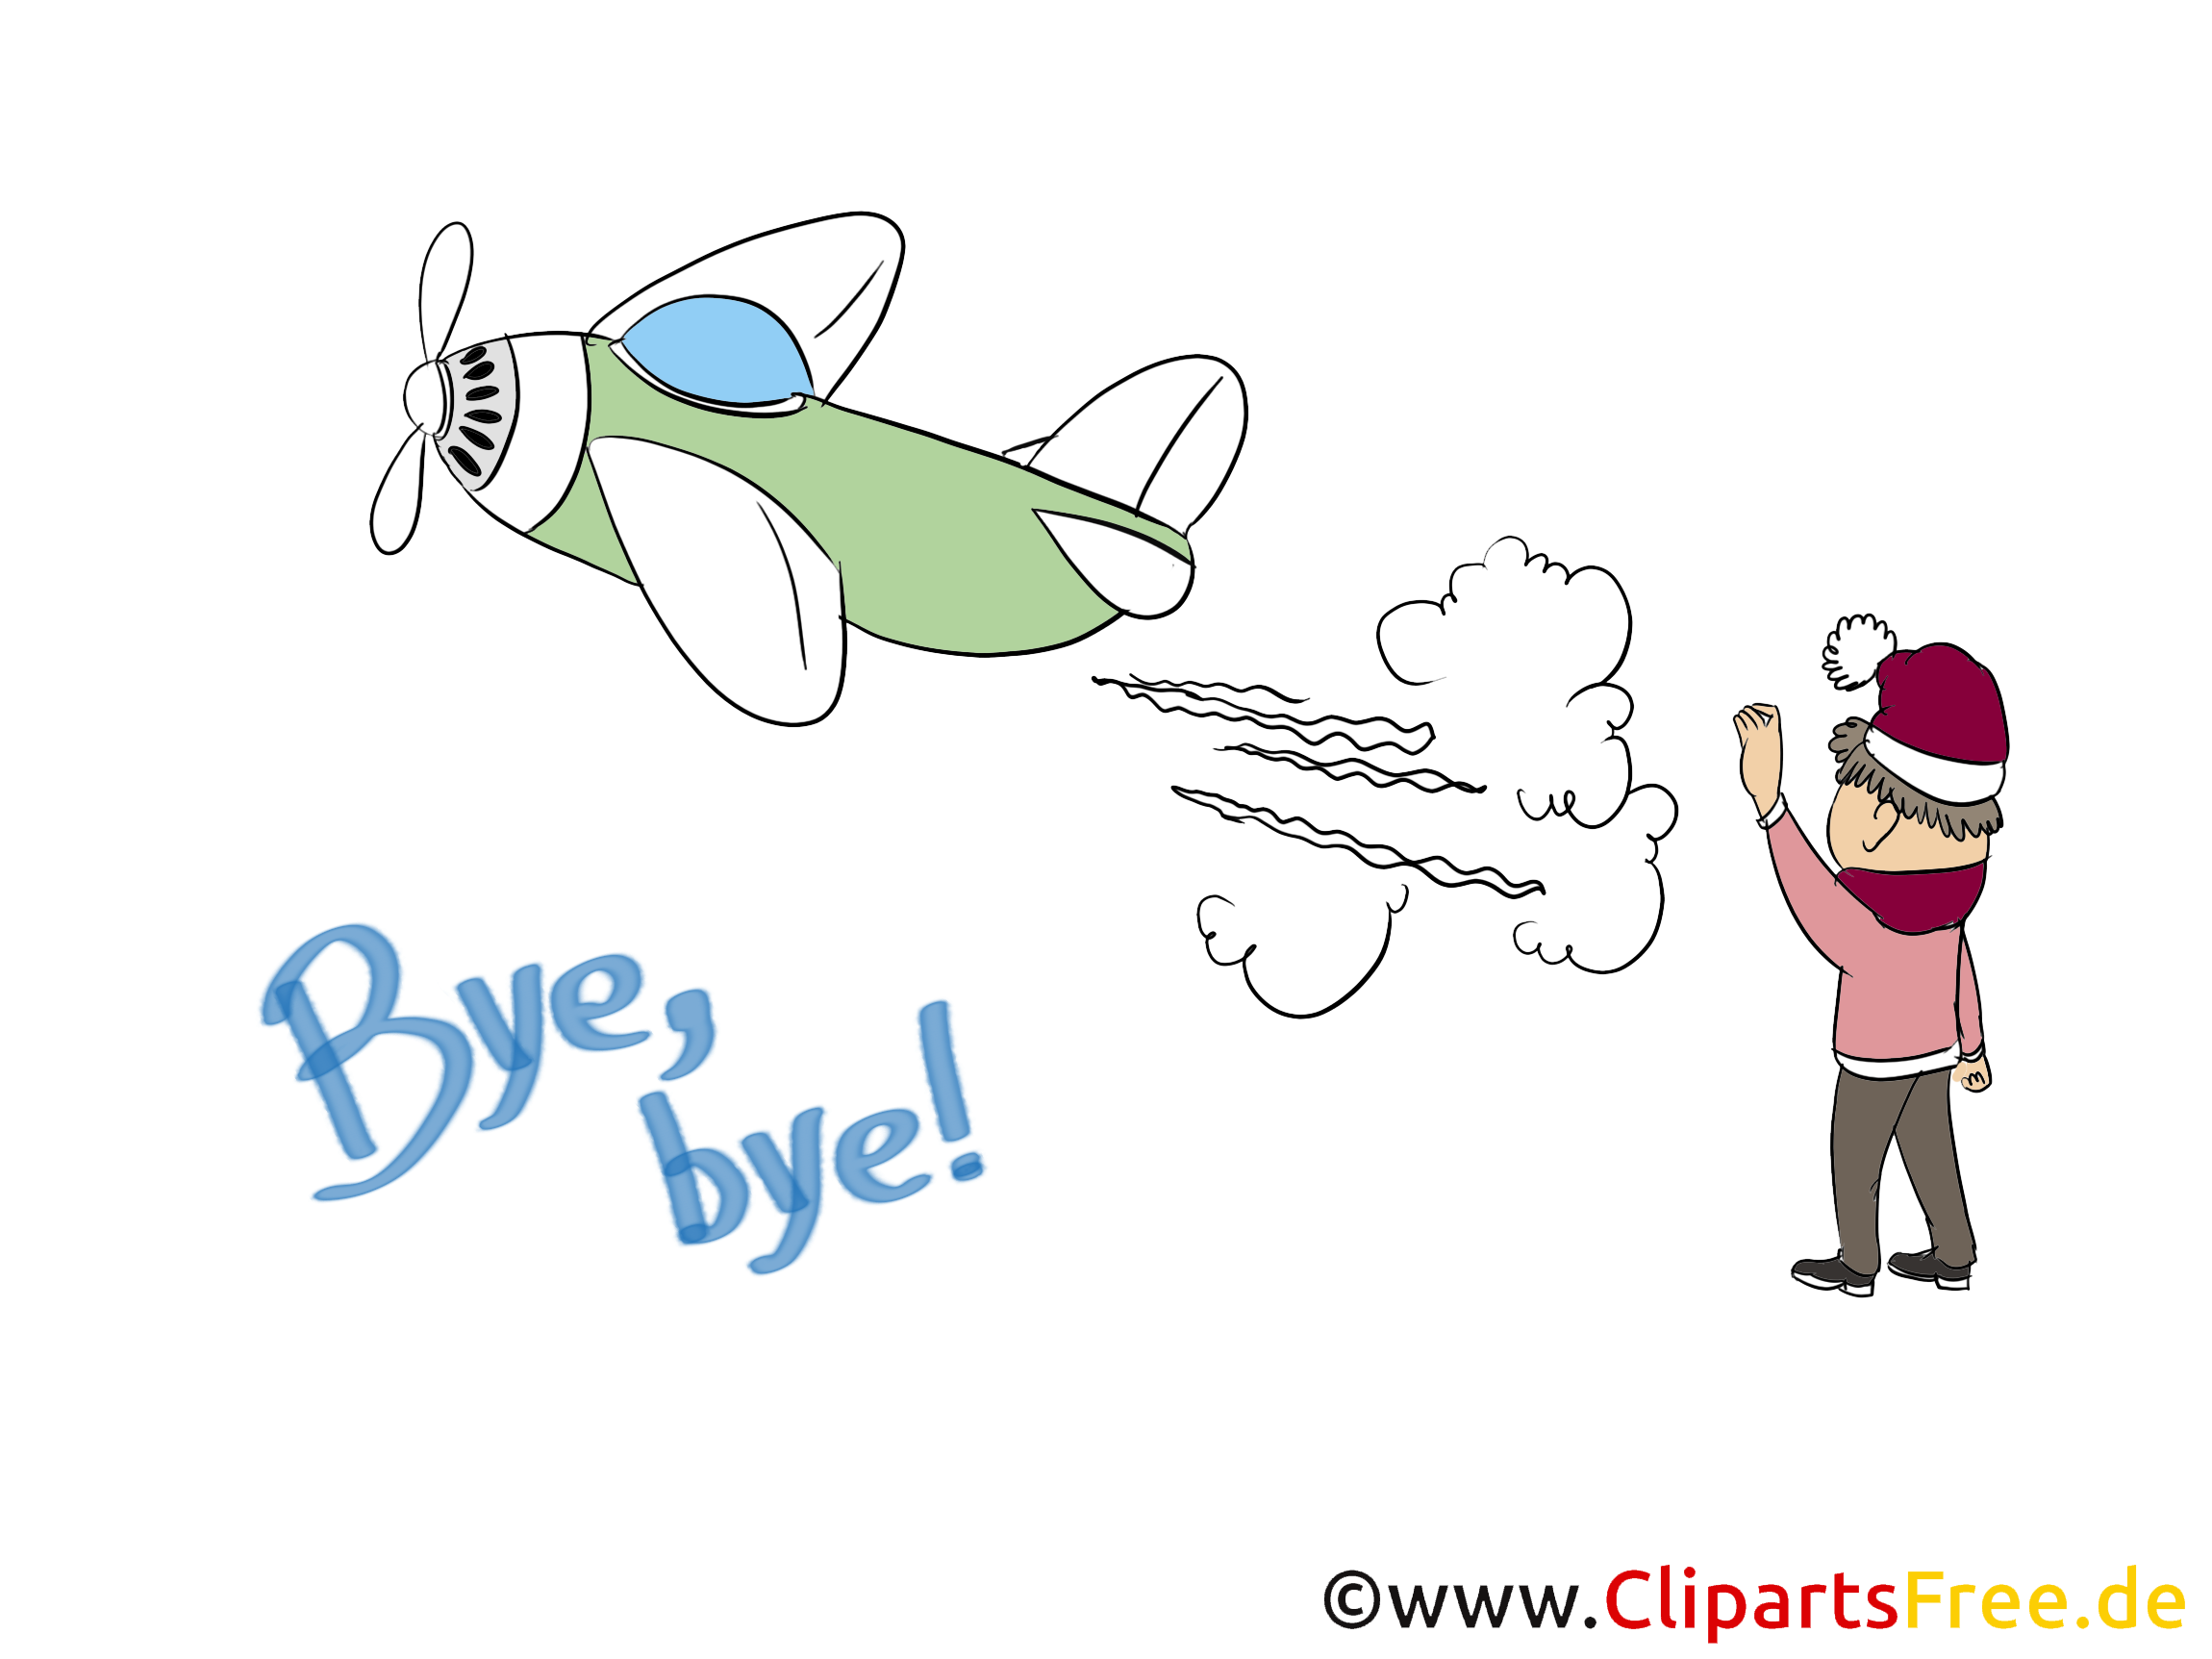 Avion clipart - Adieu dessins gratuits